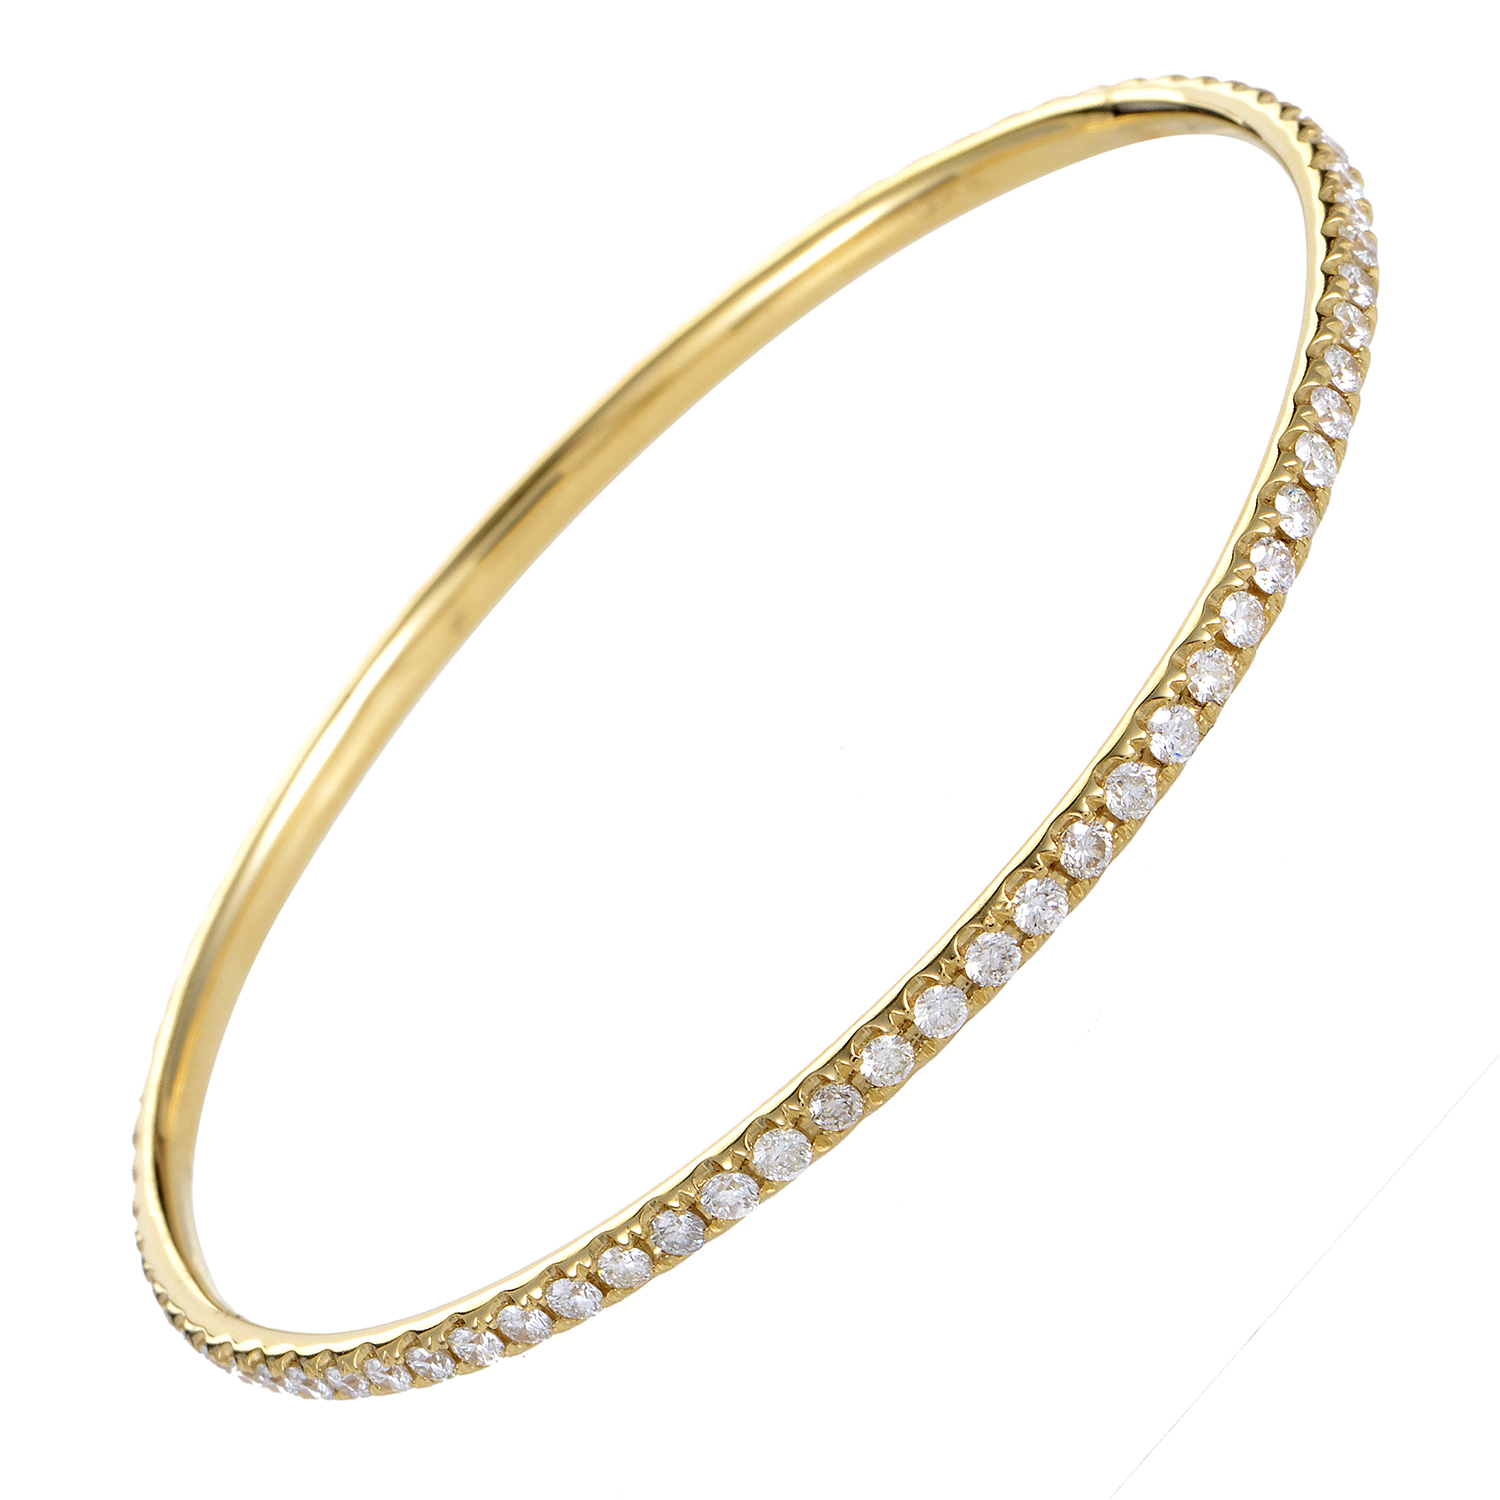 Women's 18K Yellow Gold Diamond Pave Bangle Bracelet ALB-7508Y